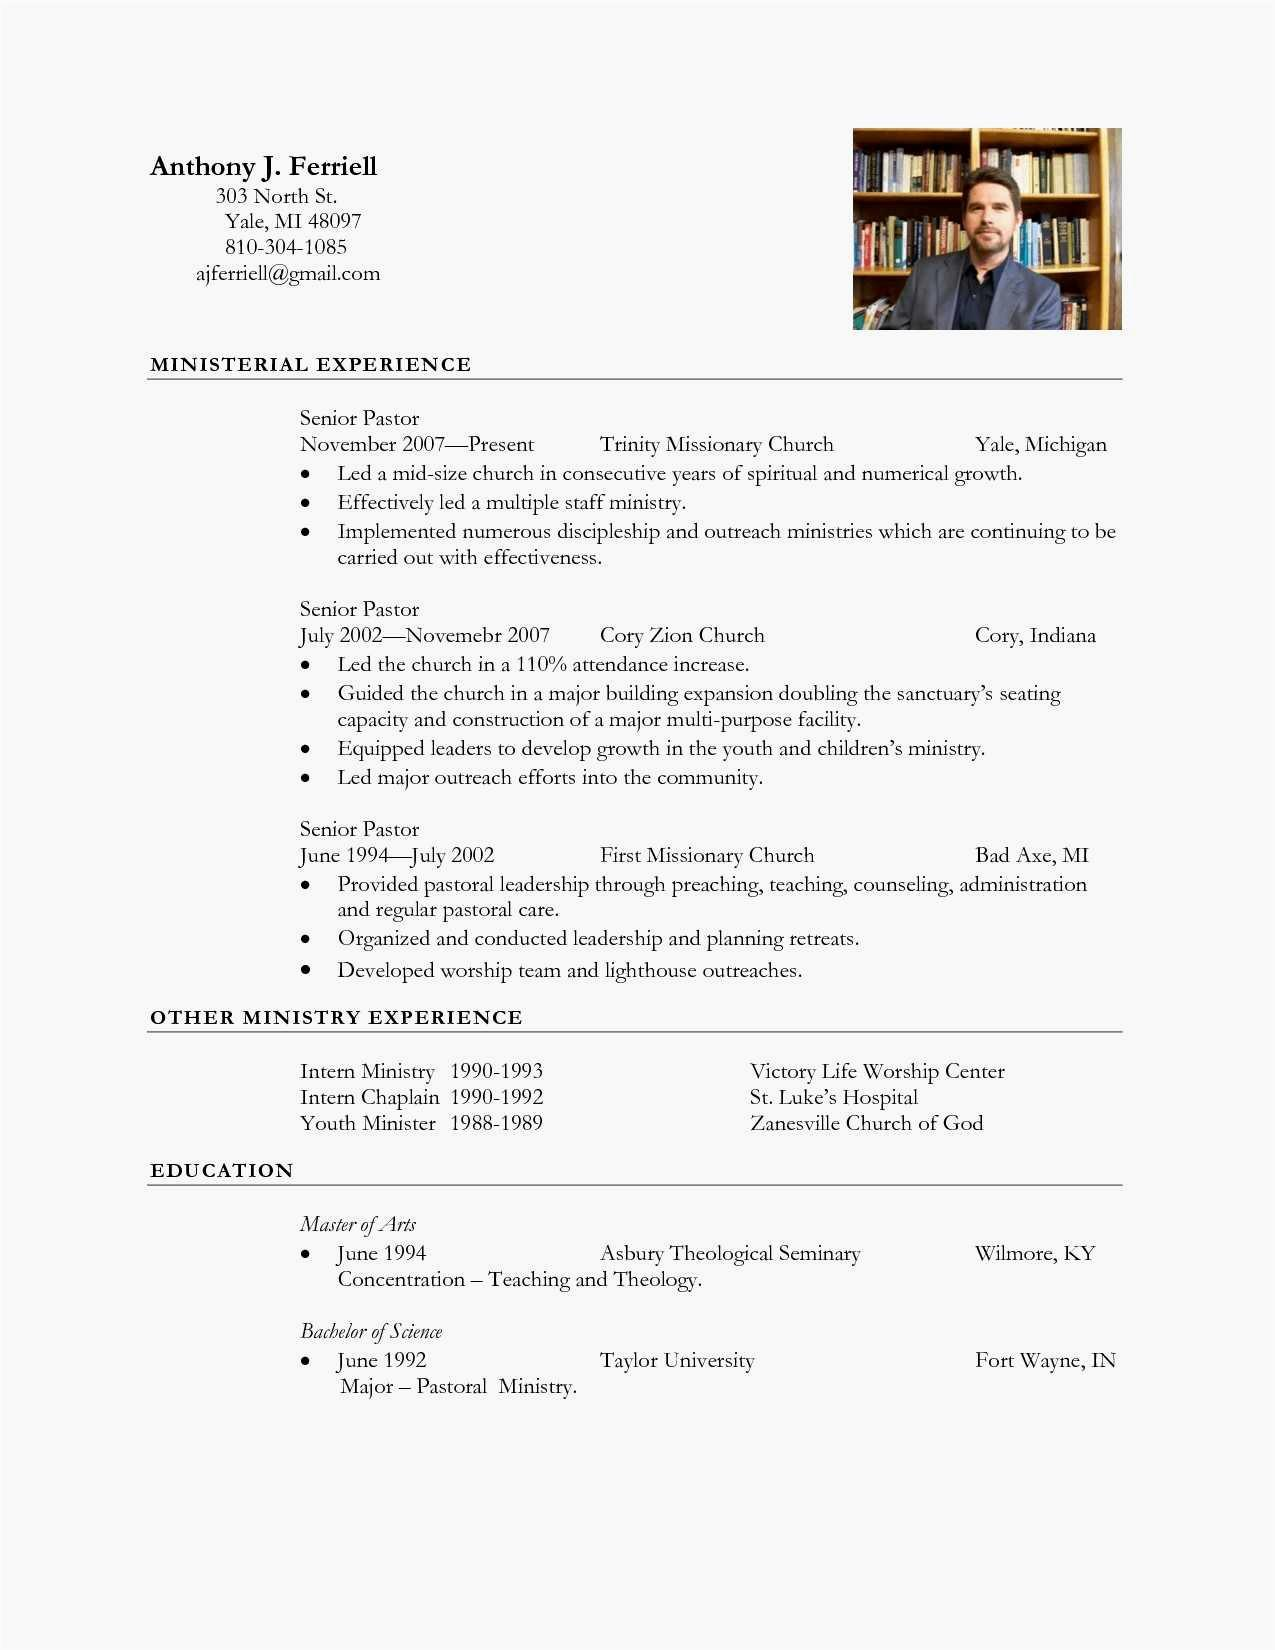 Church Directory Information Template